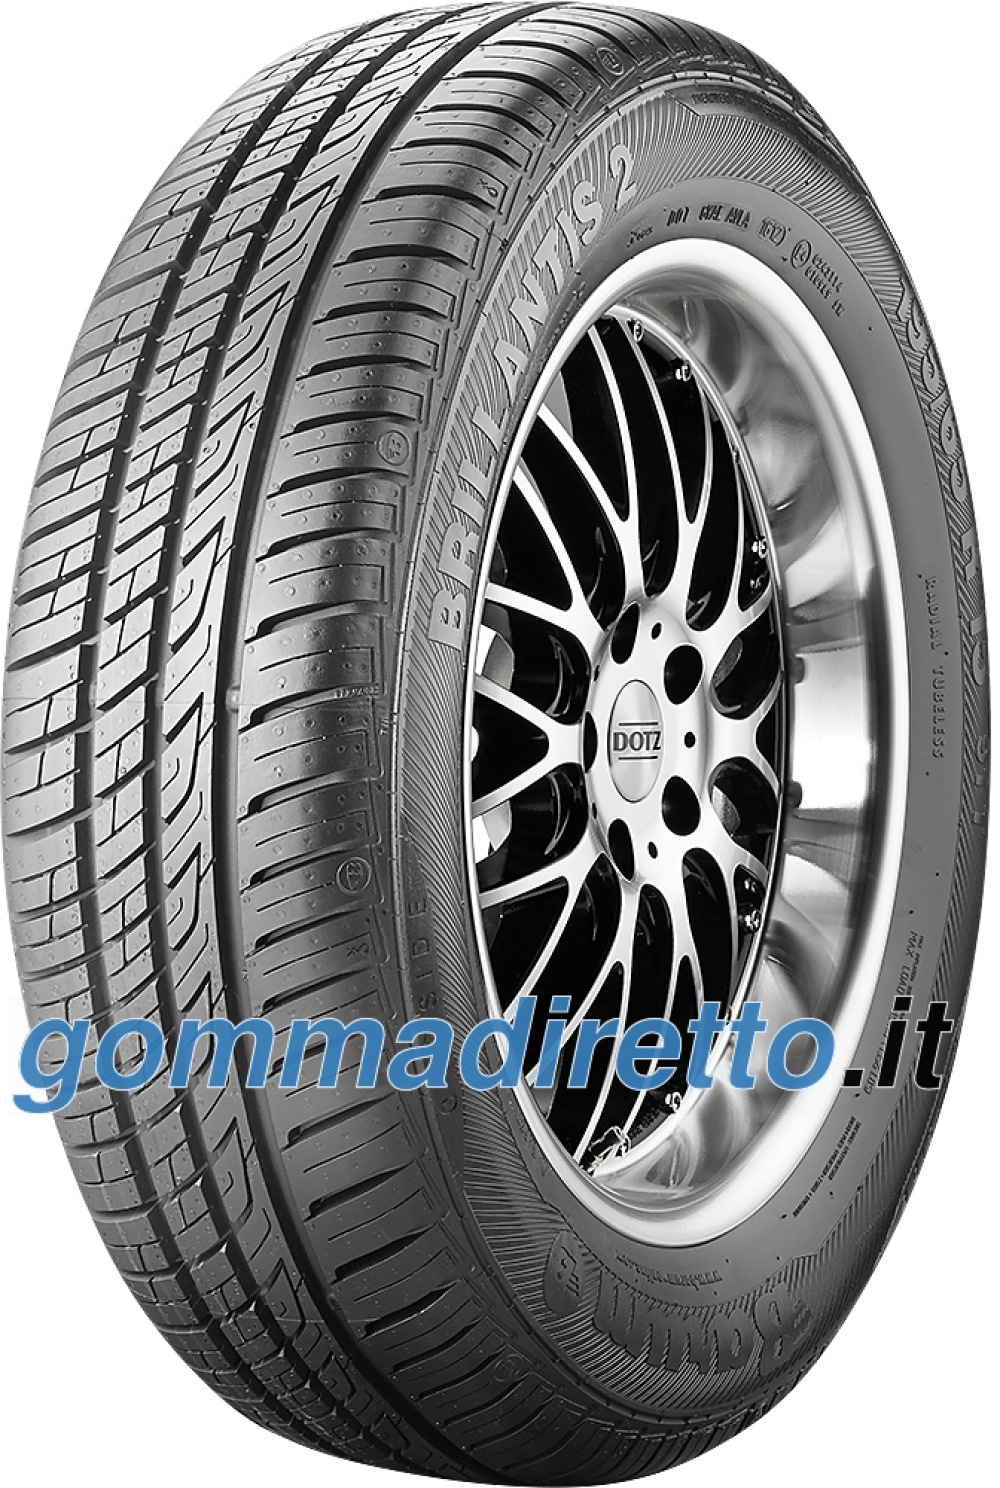 Image of Barum Brillantis 2 ( 145/80 R13 75T )